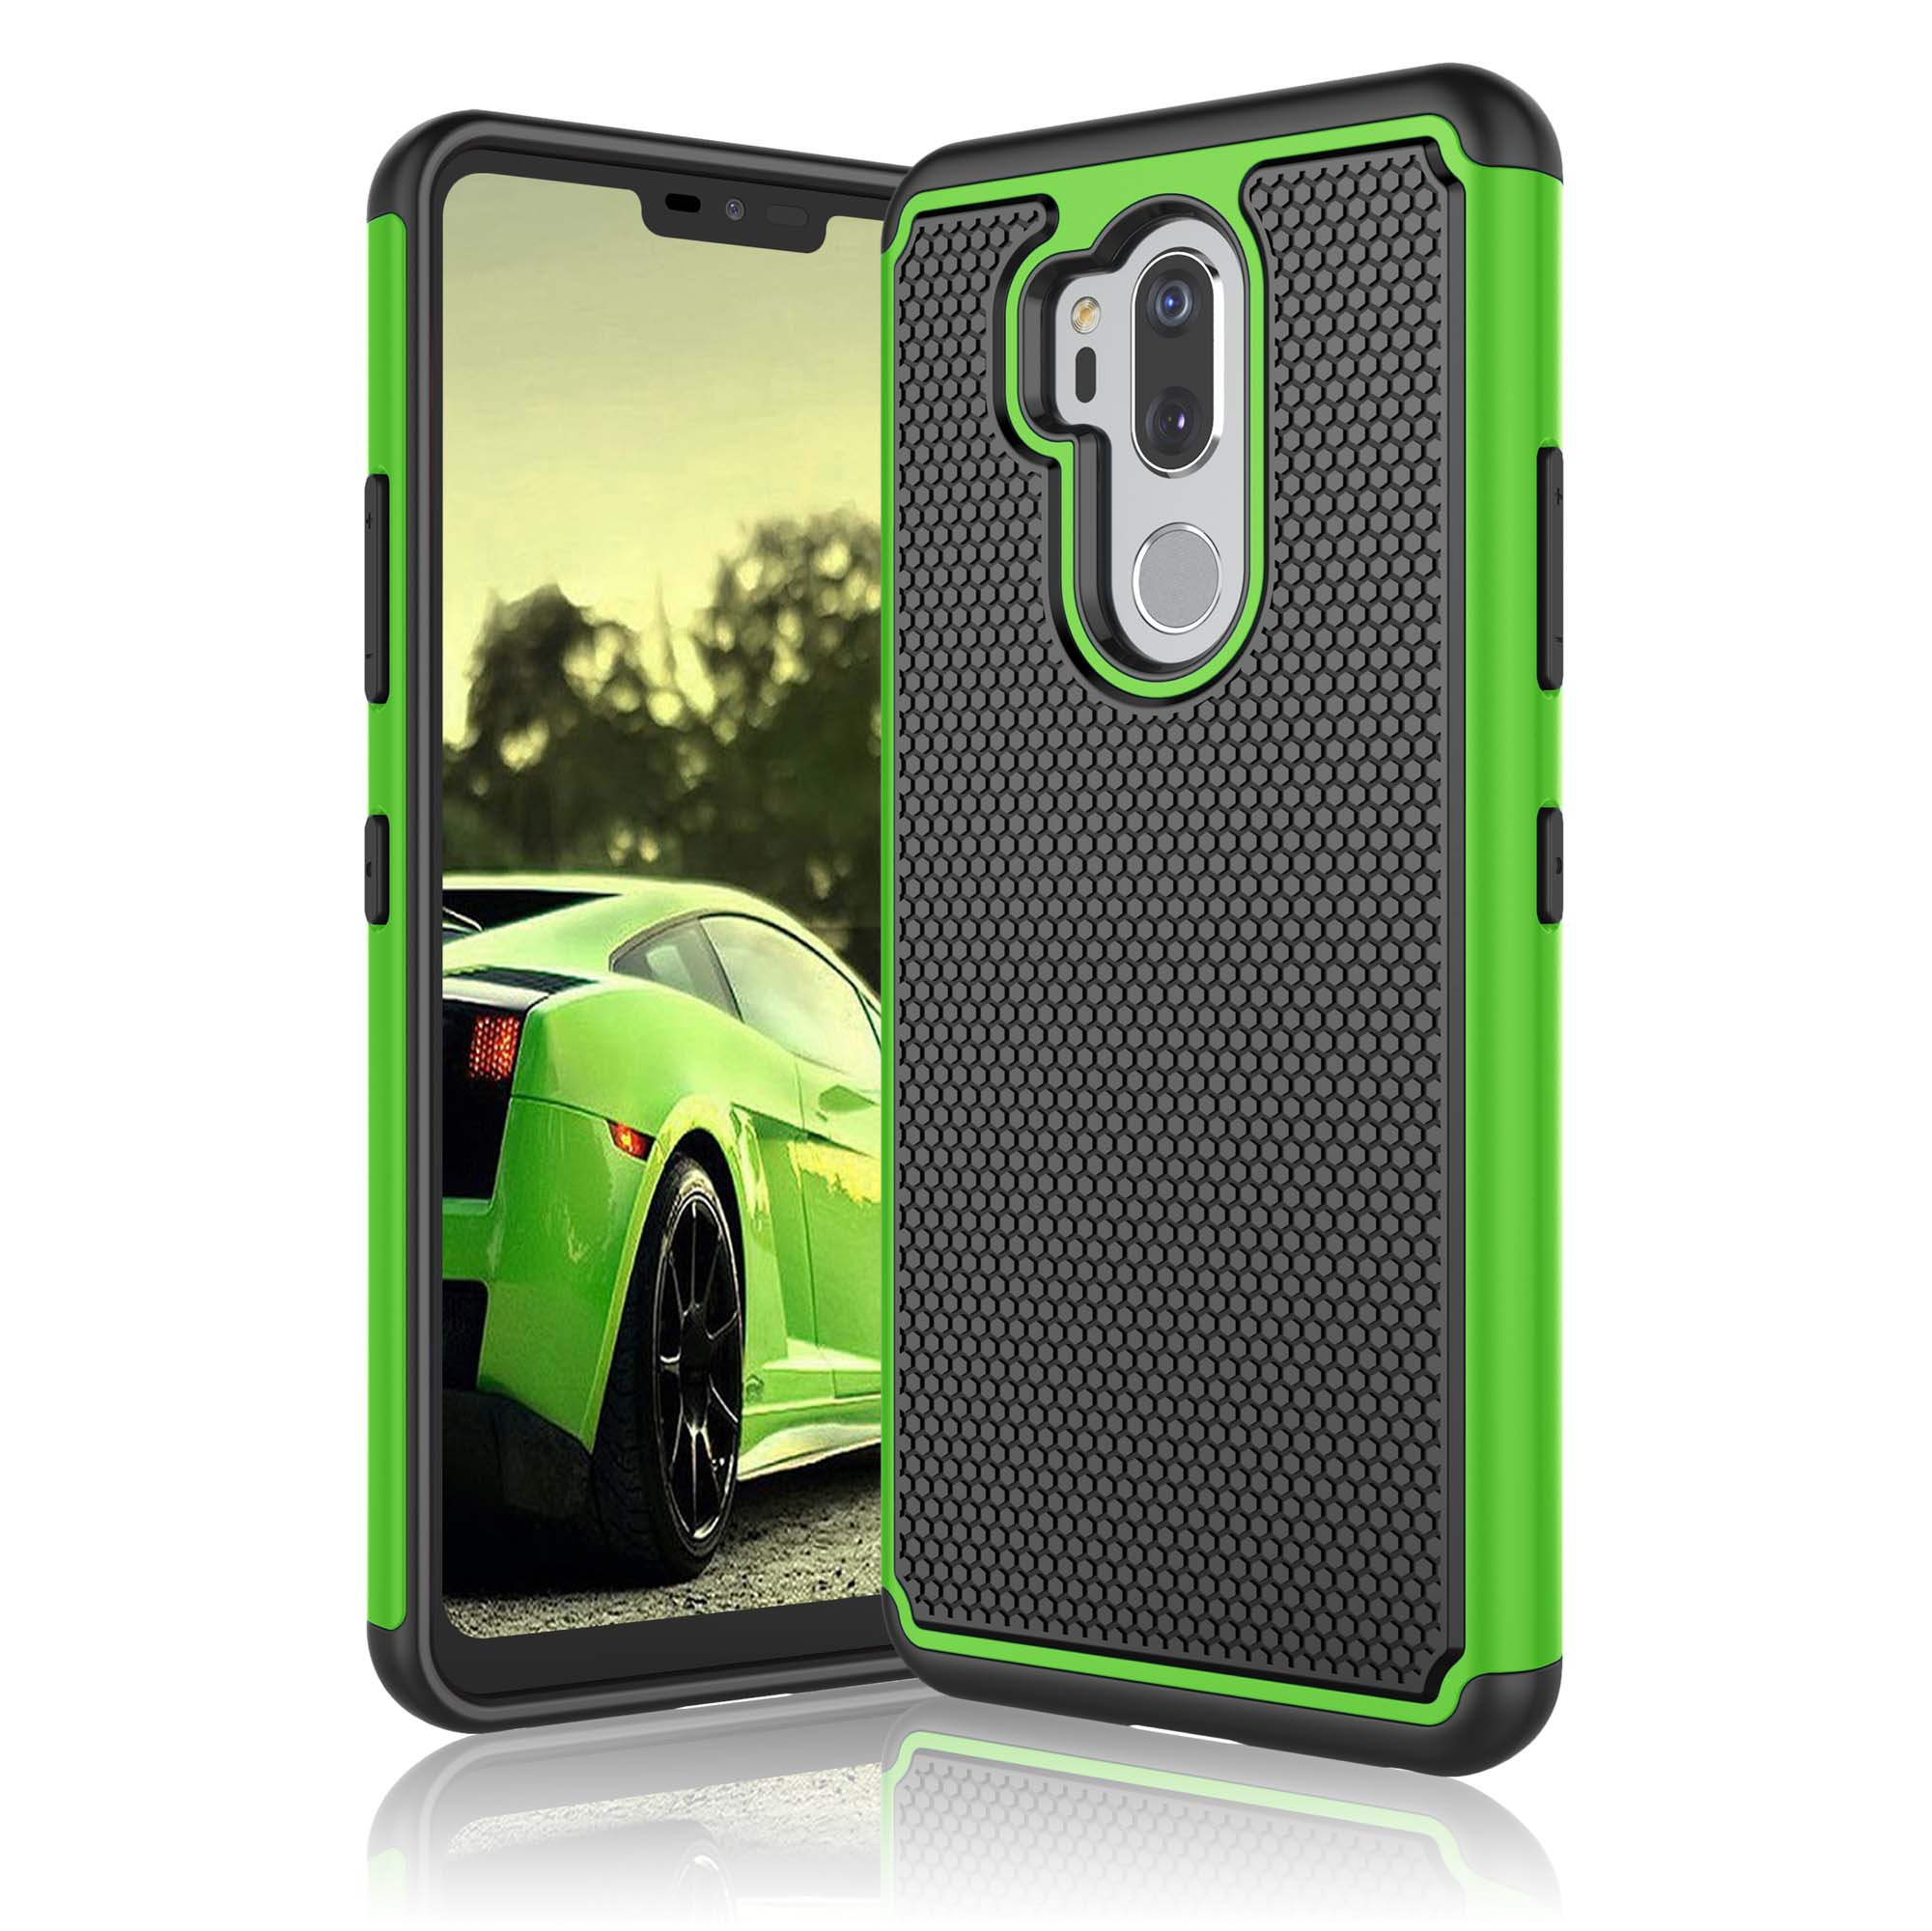 """Njjex Case 6.1"""" LG G7 / LG G7 ThinQ / LG G7+ ThinQ, Shock Absorbing Dual Layer Silicone & Plastic Scratch Resistant Bumper Rugged Grip Hard Protective Cases Cover For LG LM-G710 / LG G7 (2018)"""